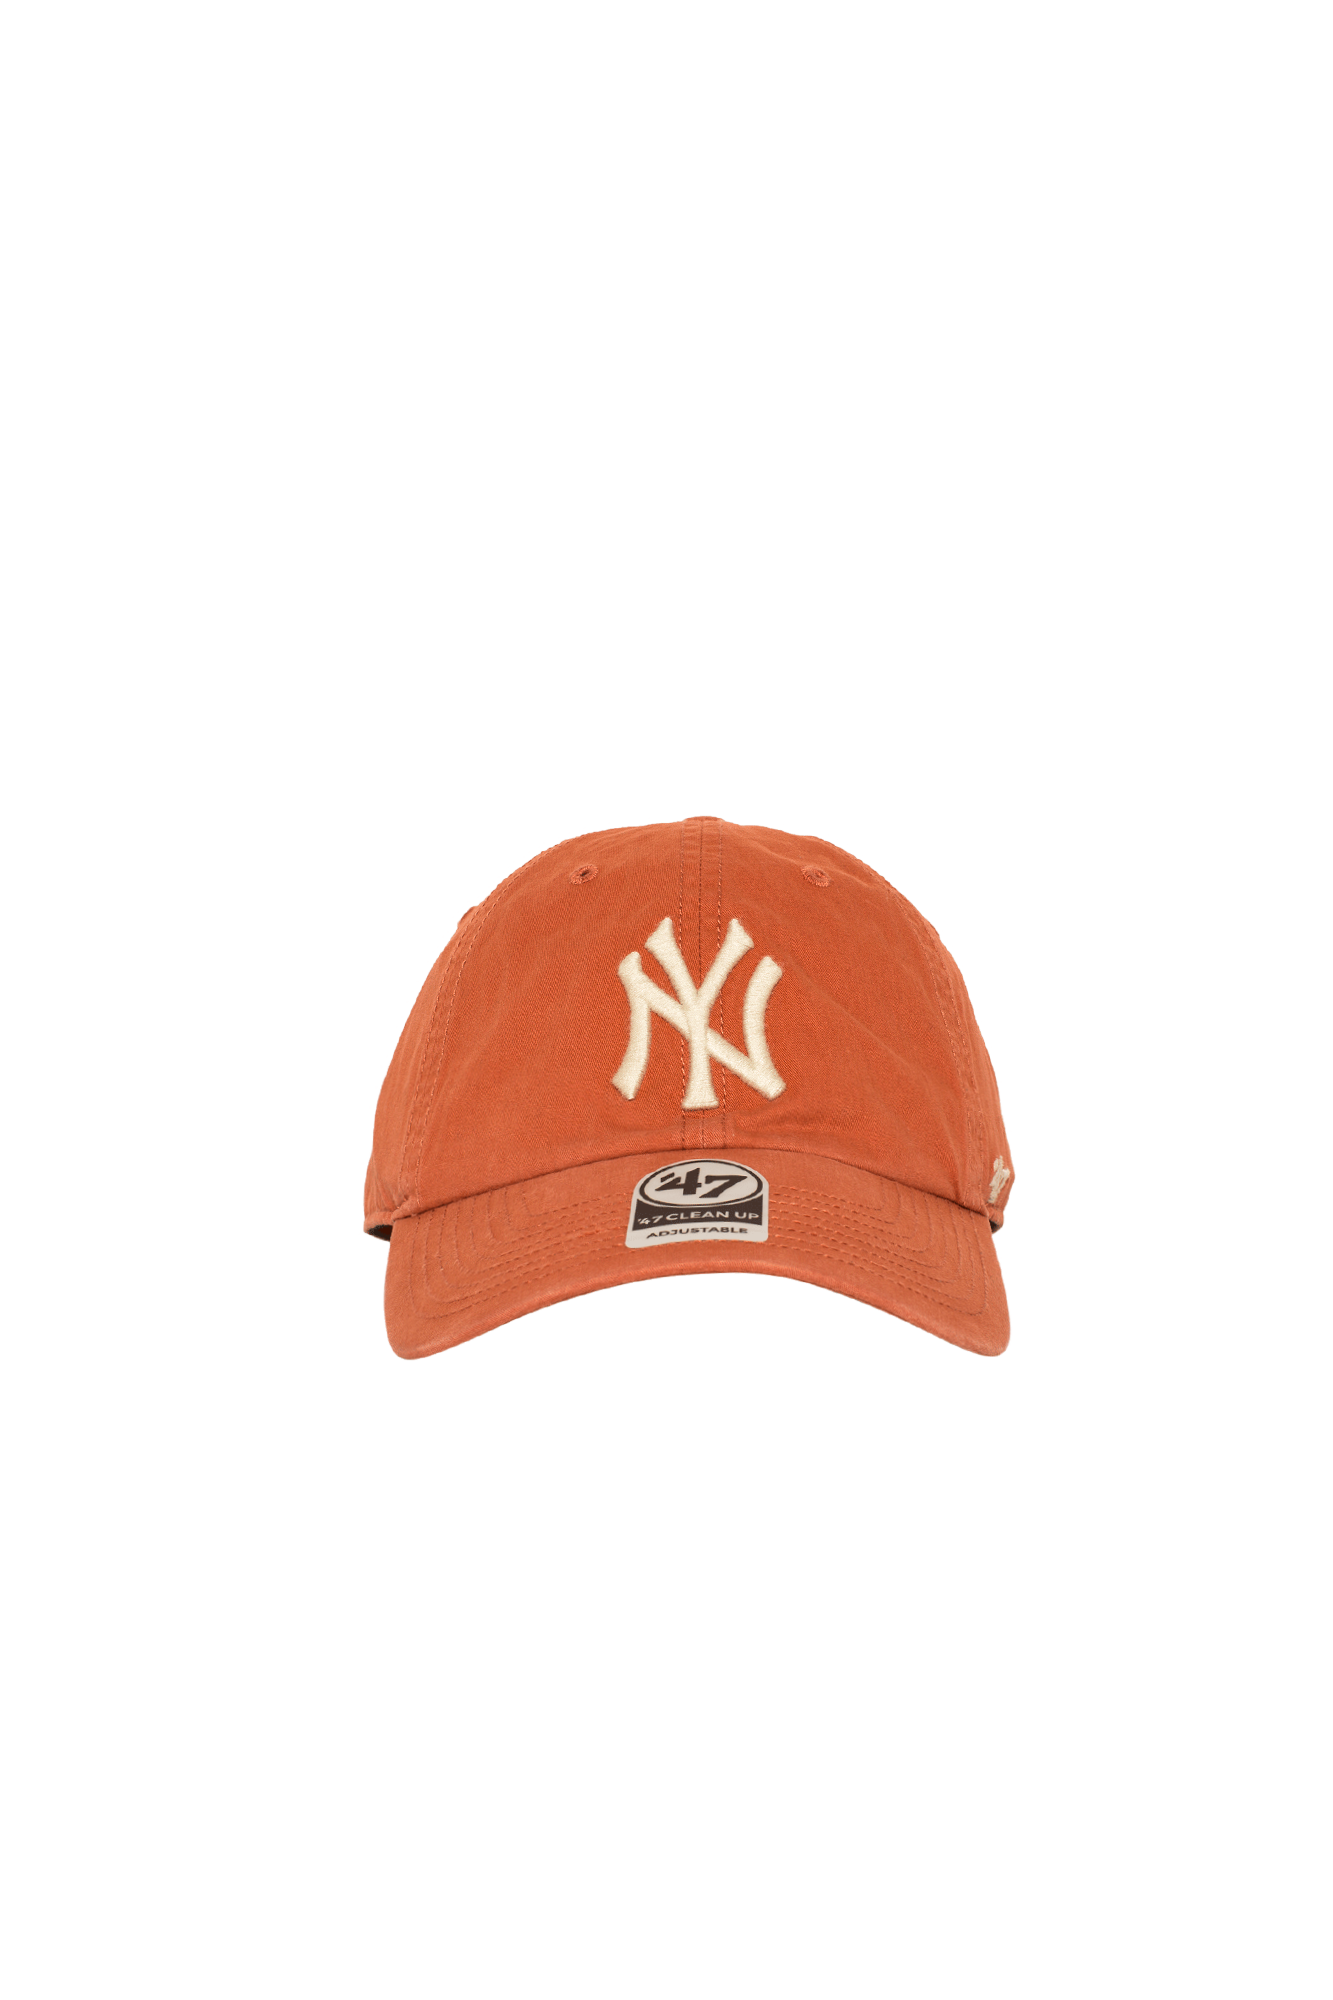 47 Cappelli Hudson Clean Up New York Yankees Arancione 47-B-HUDSN17#OWS#OX#OS - One Block Down